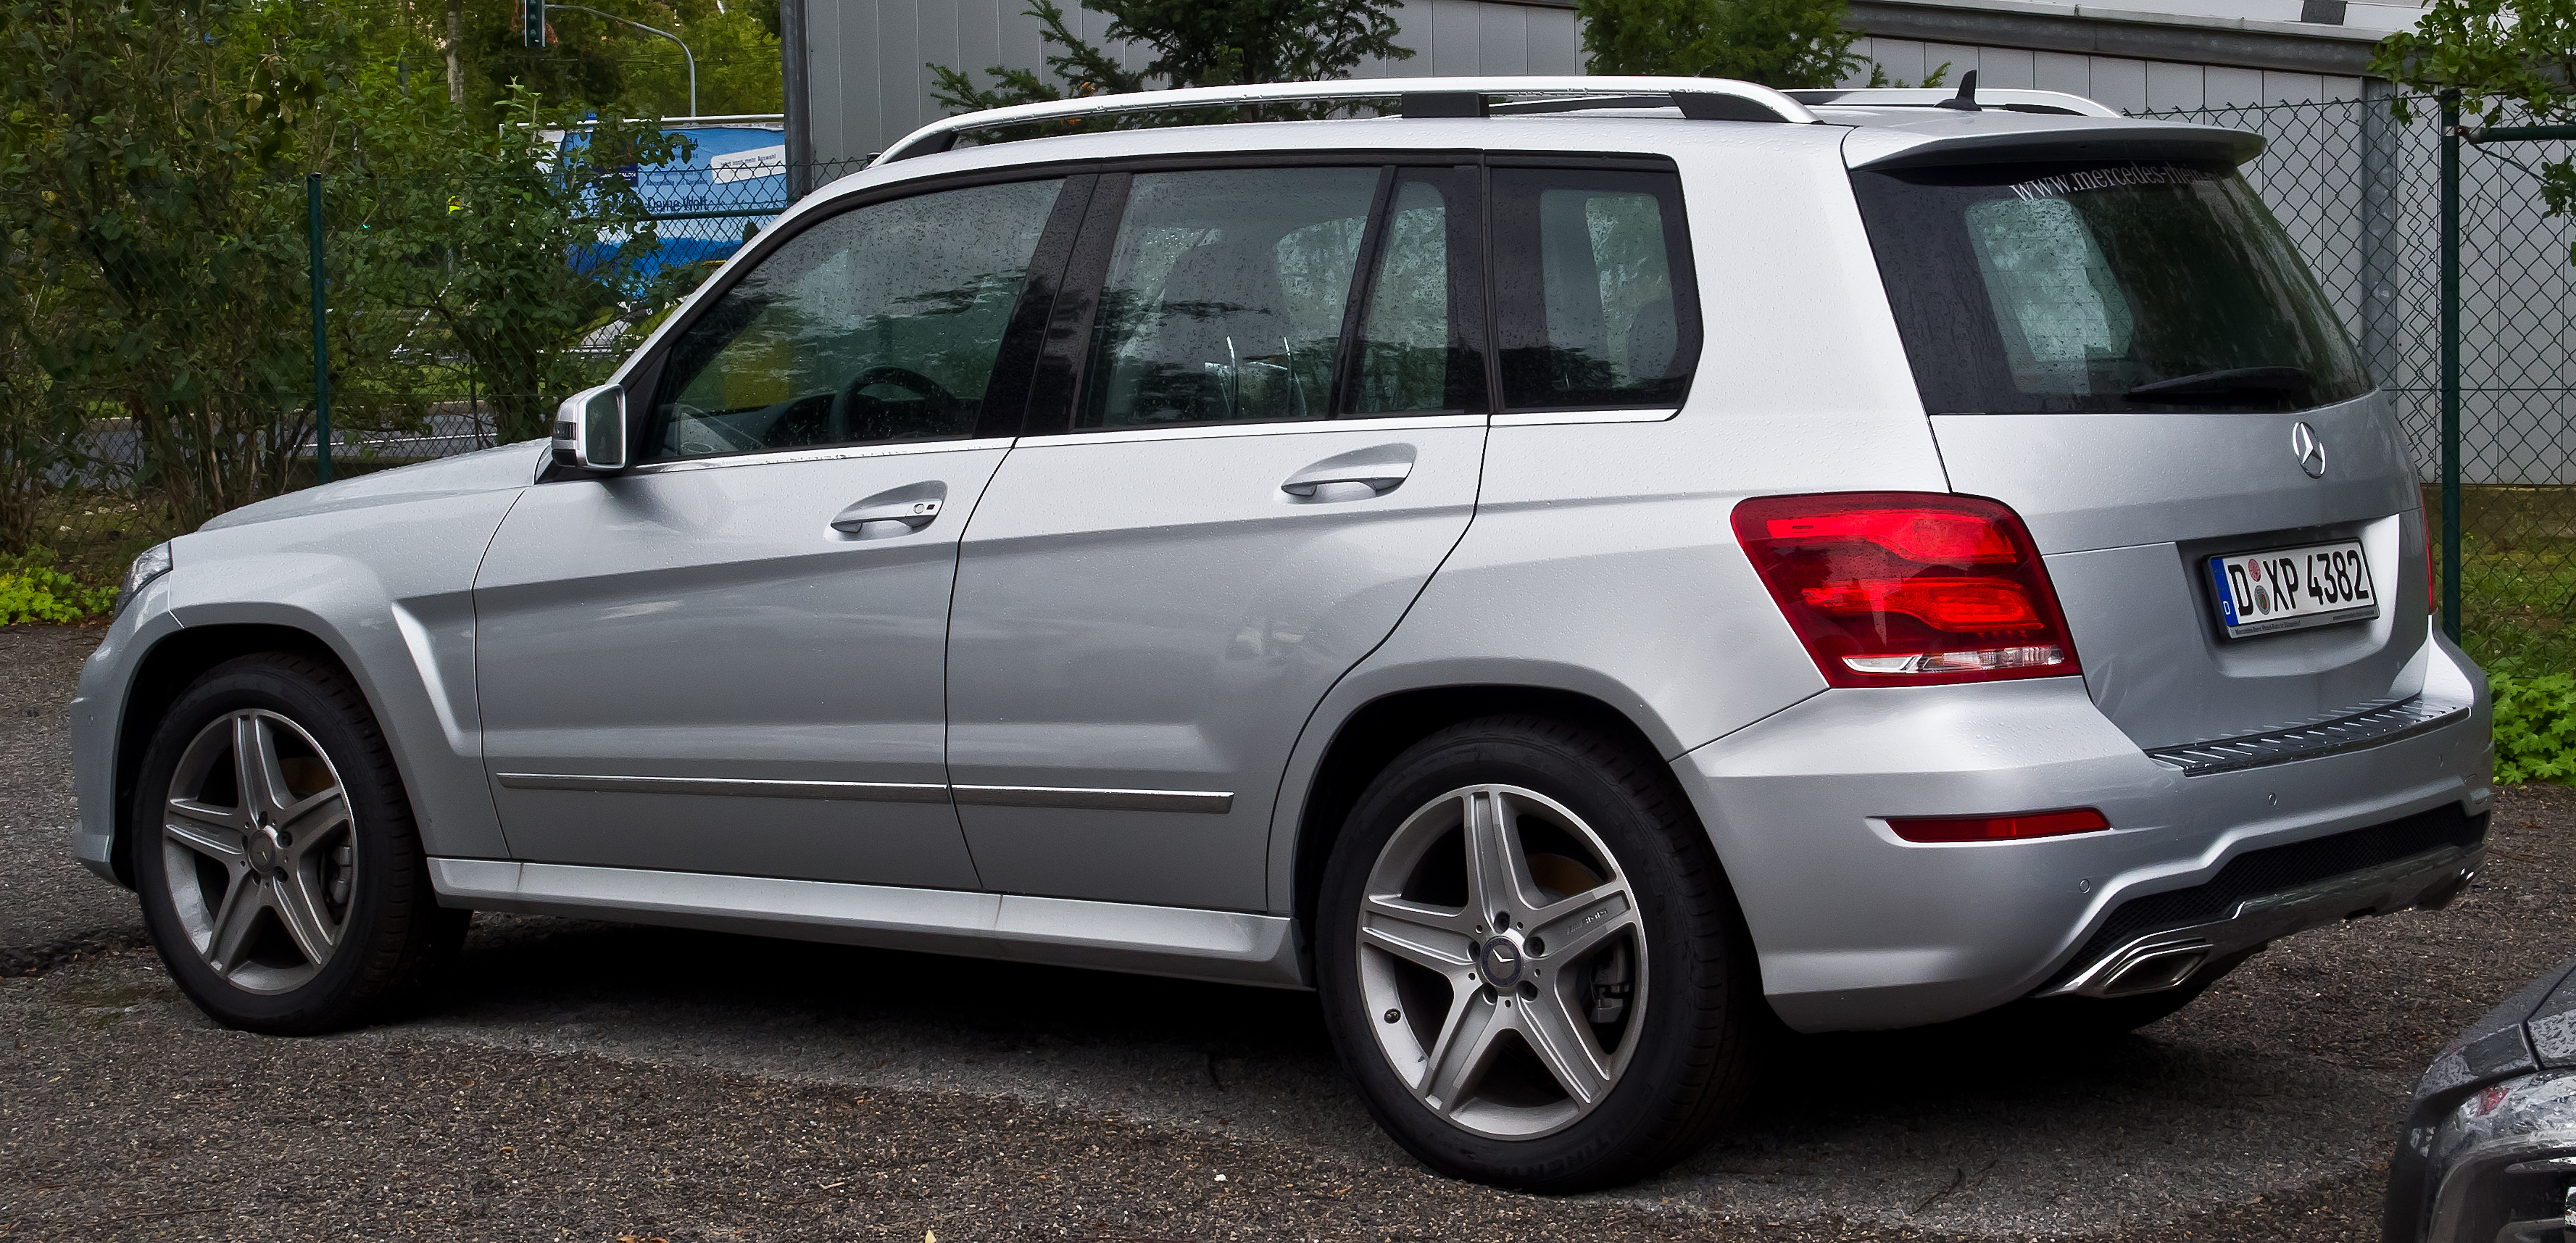 File mercedes benz glk 220 cdi 4matic sport paket amg x for Mercedes benz glk amg